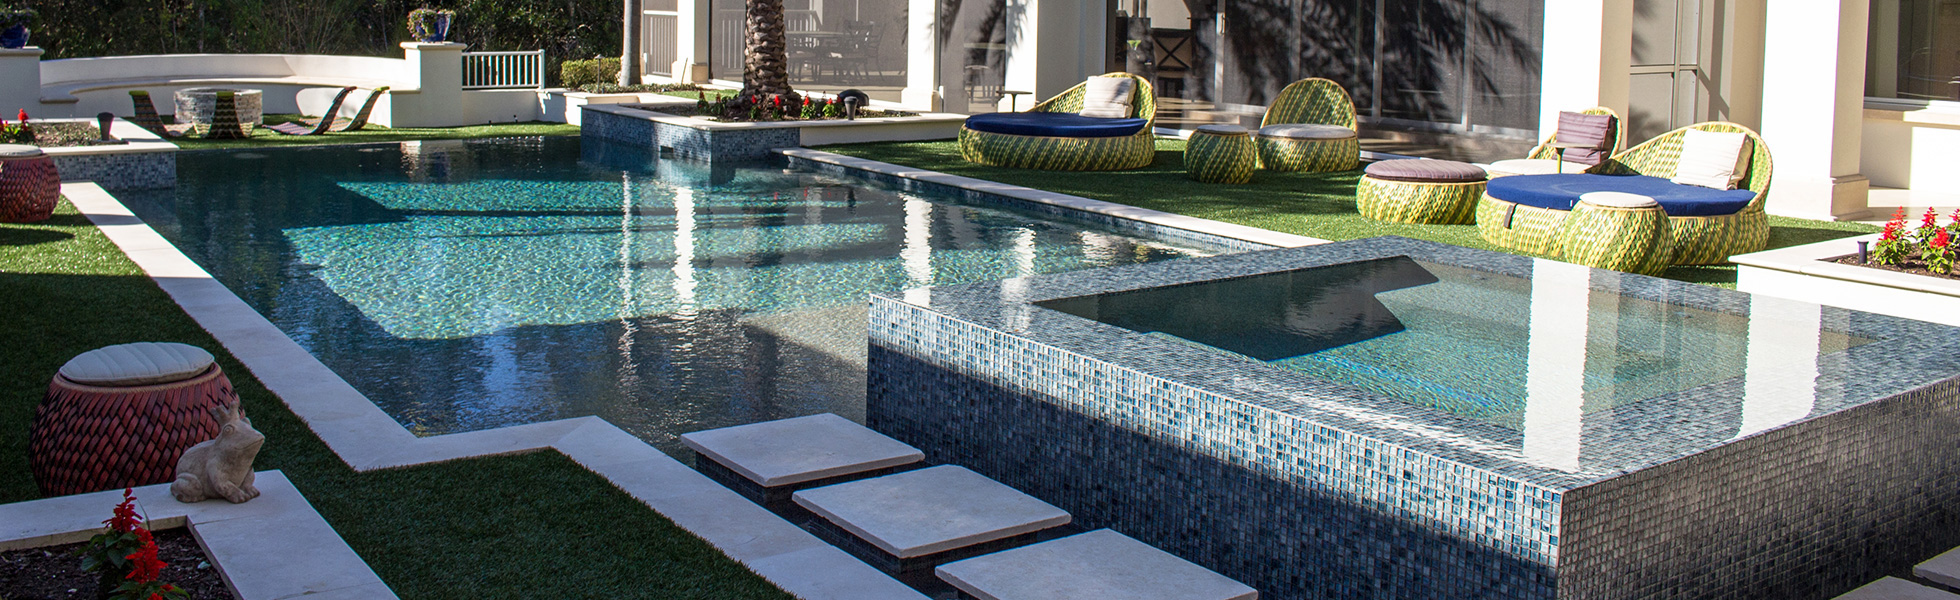 luxury pool spa oasis by paradise pools by design